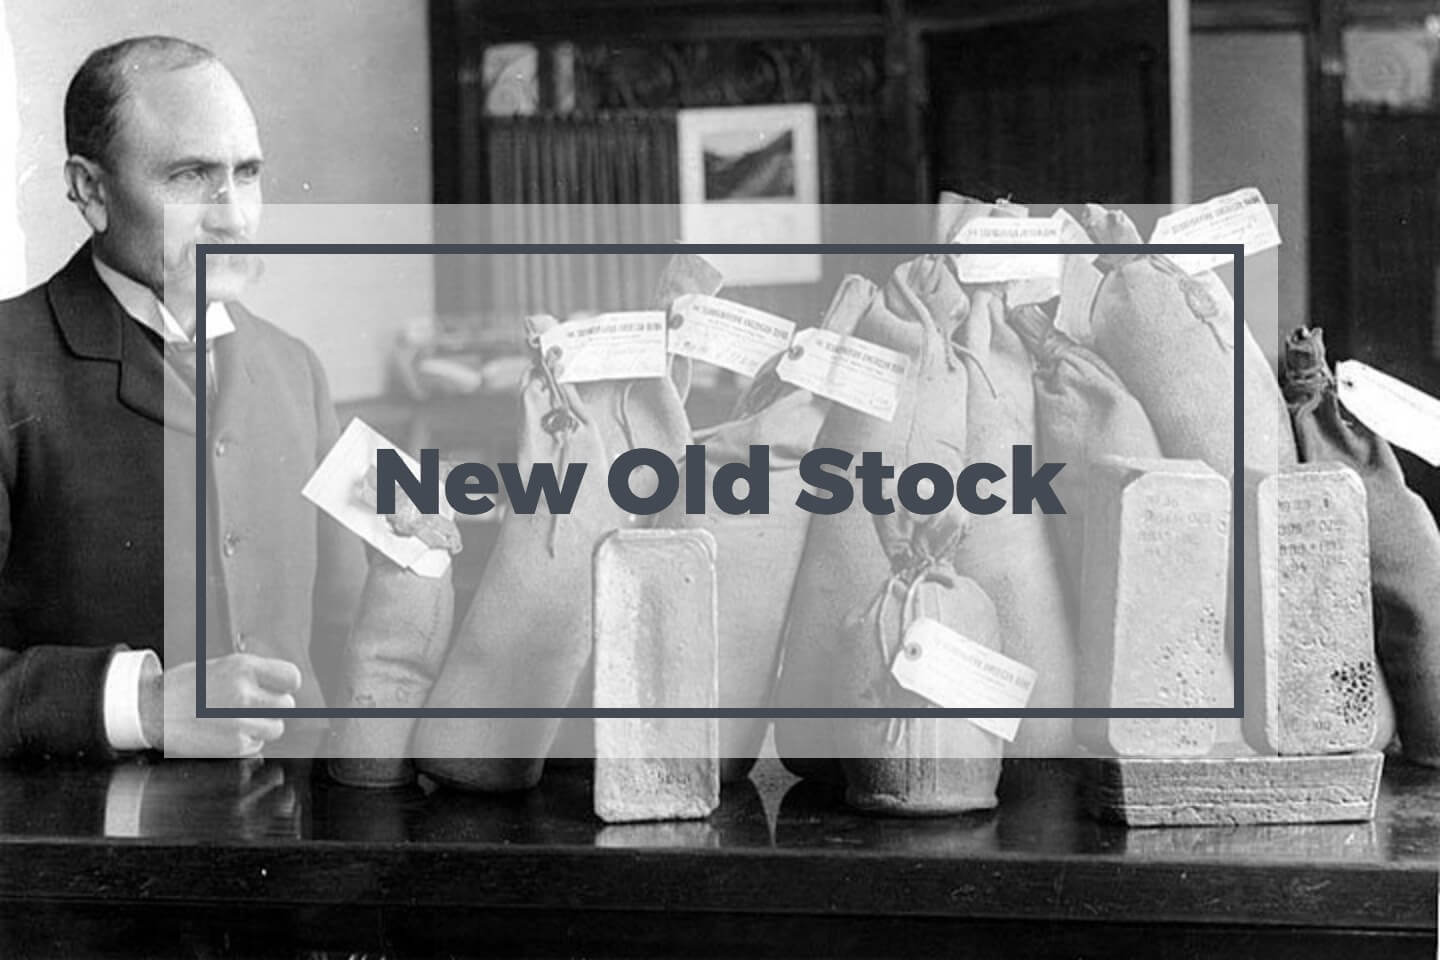 New old stock photos